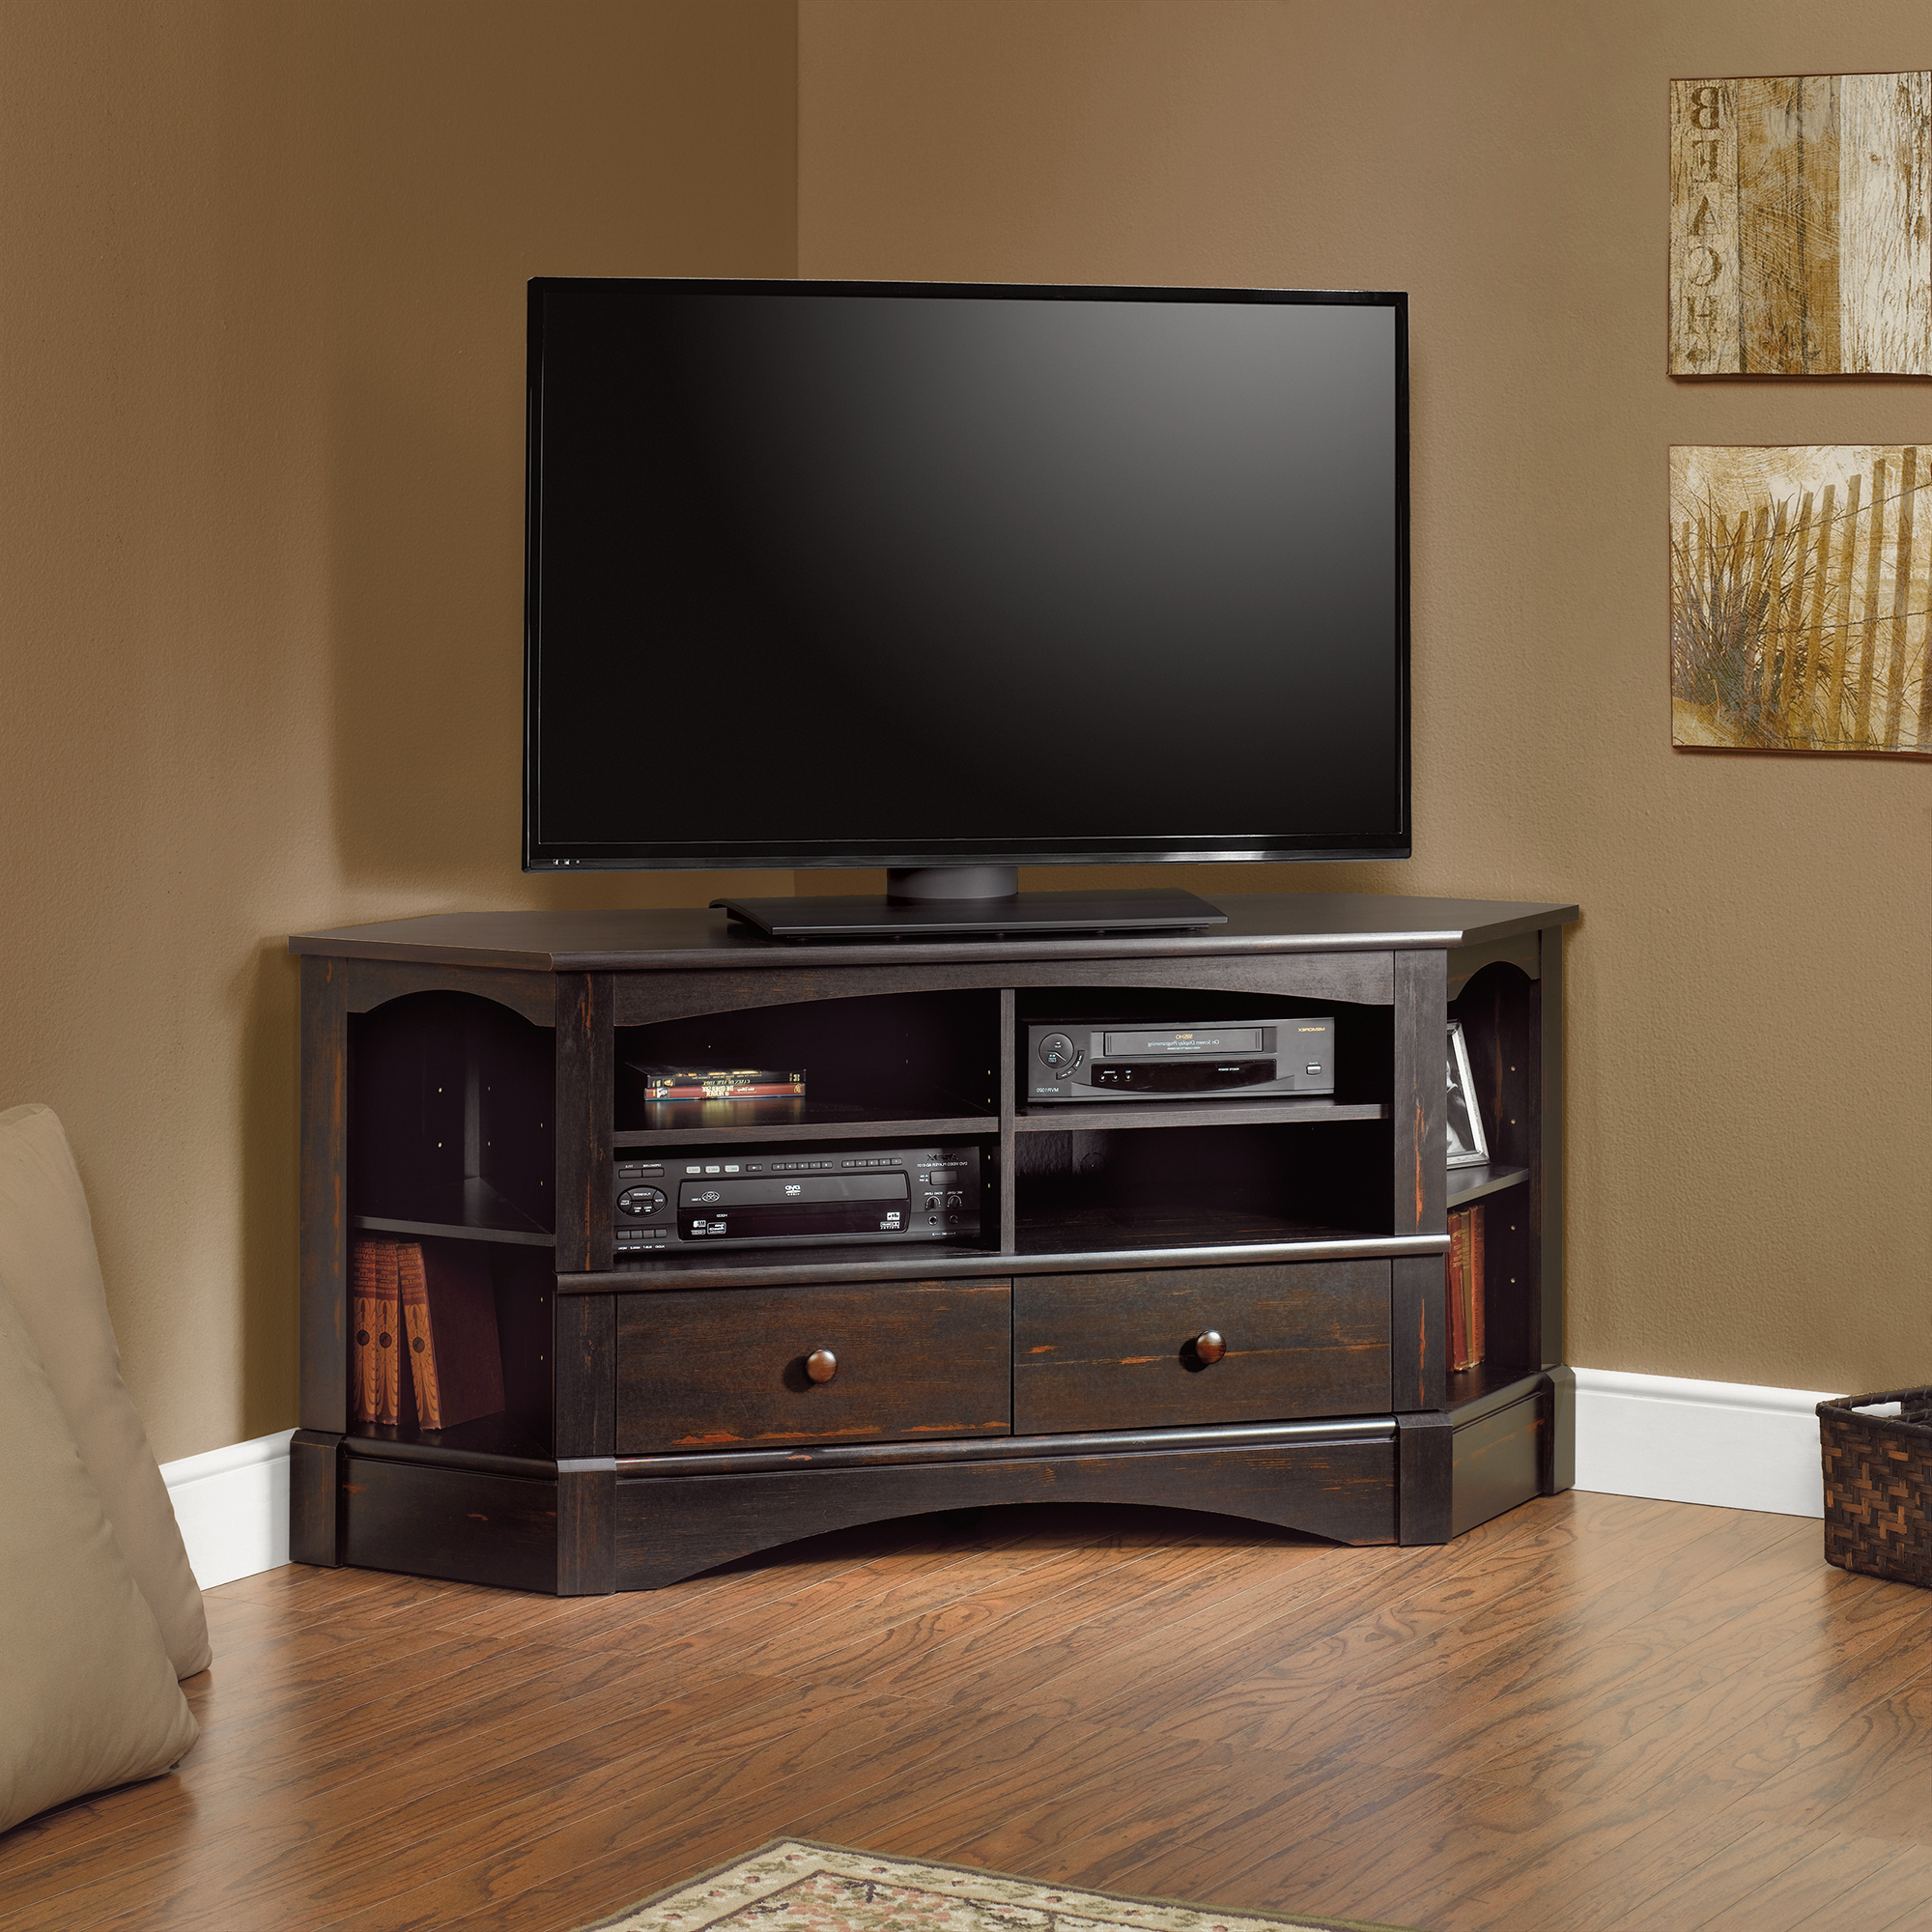 Sauder With Regard To Best And Newest Corner Tv Cabinets (Gallery 6 of 20)